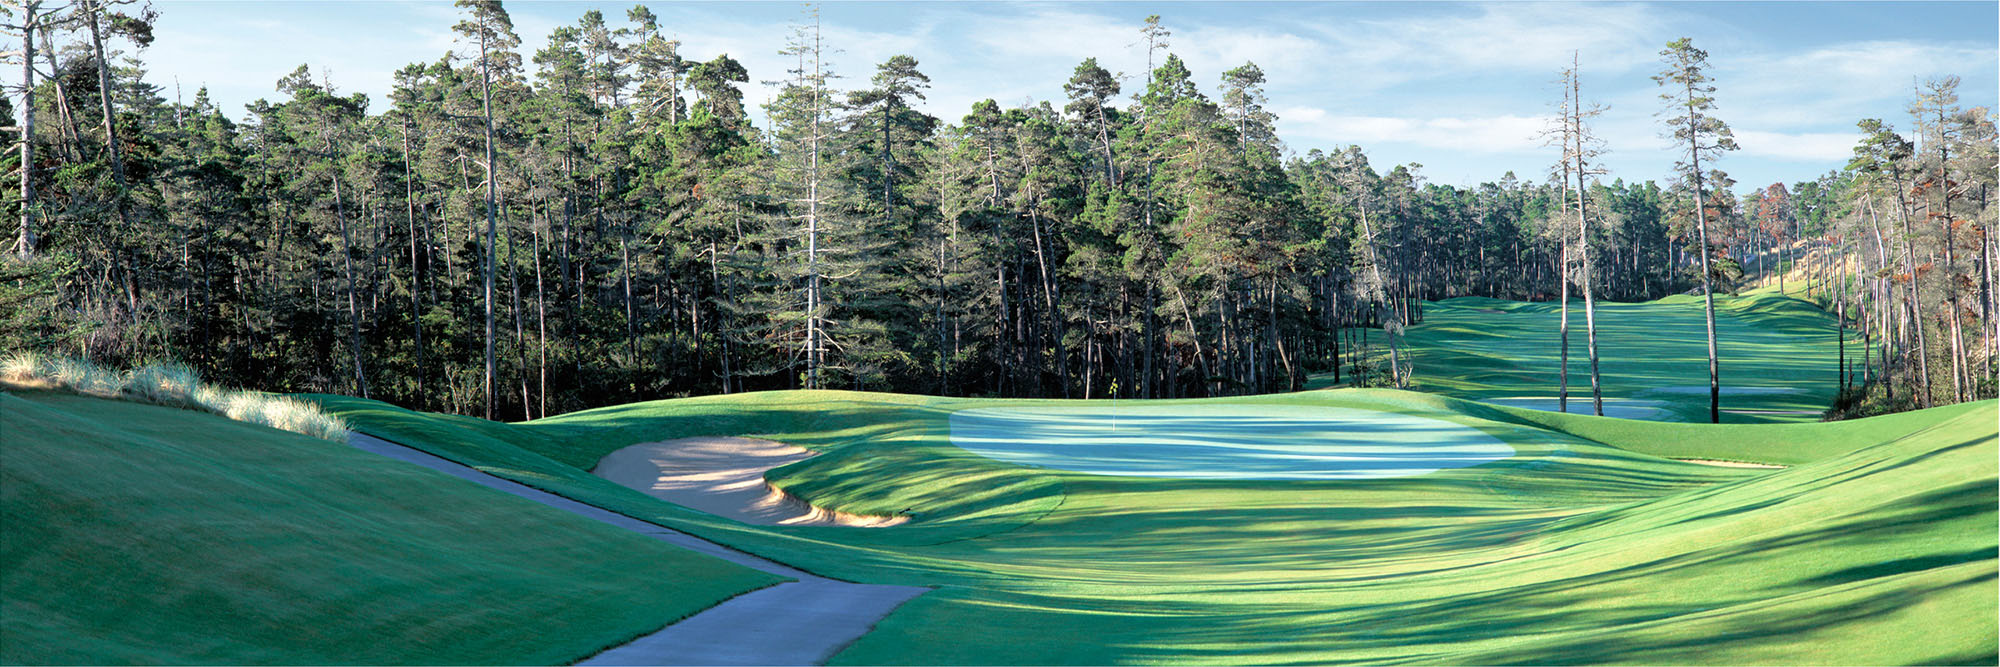 Golf Course Image - Sandpines No. 8